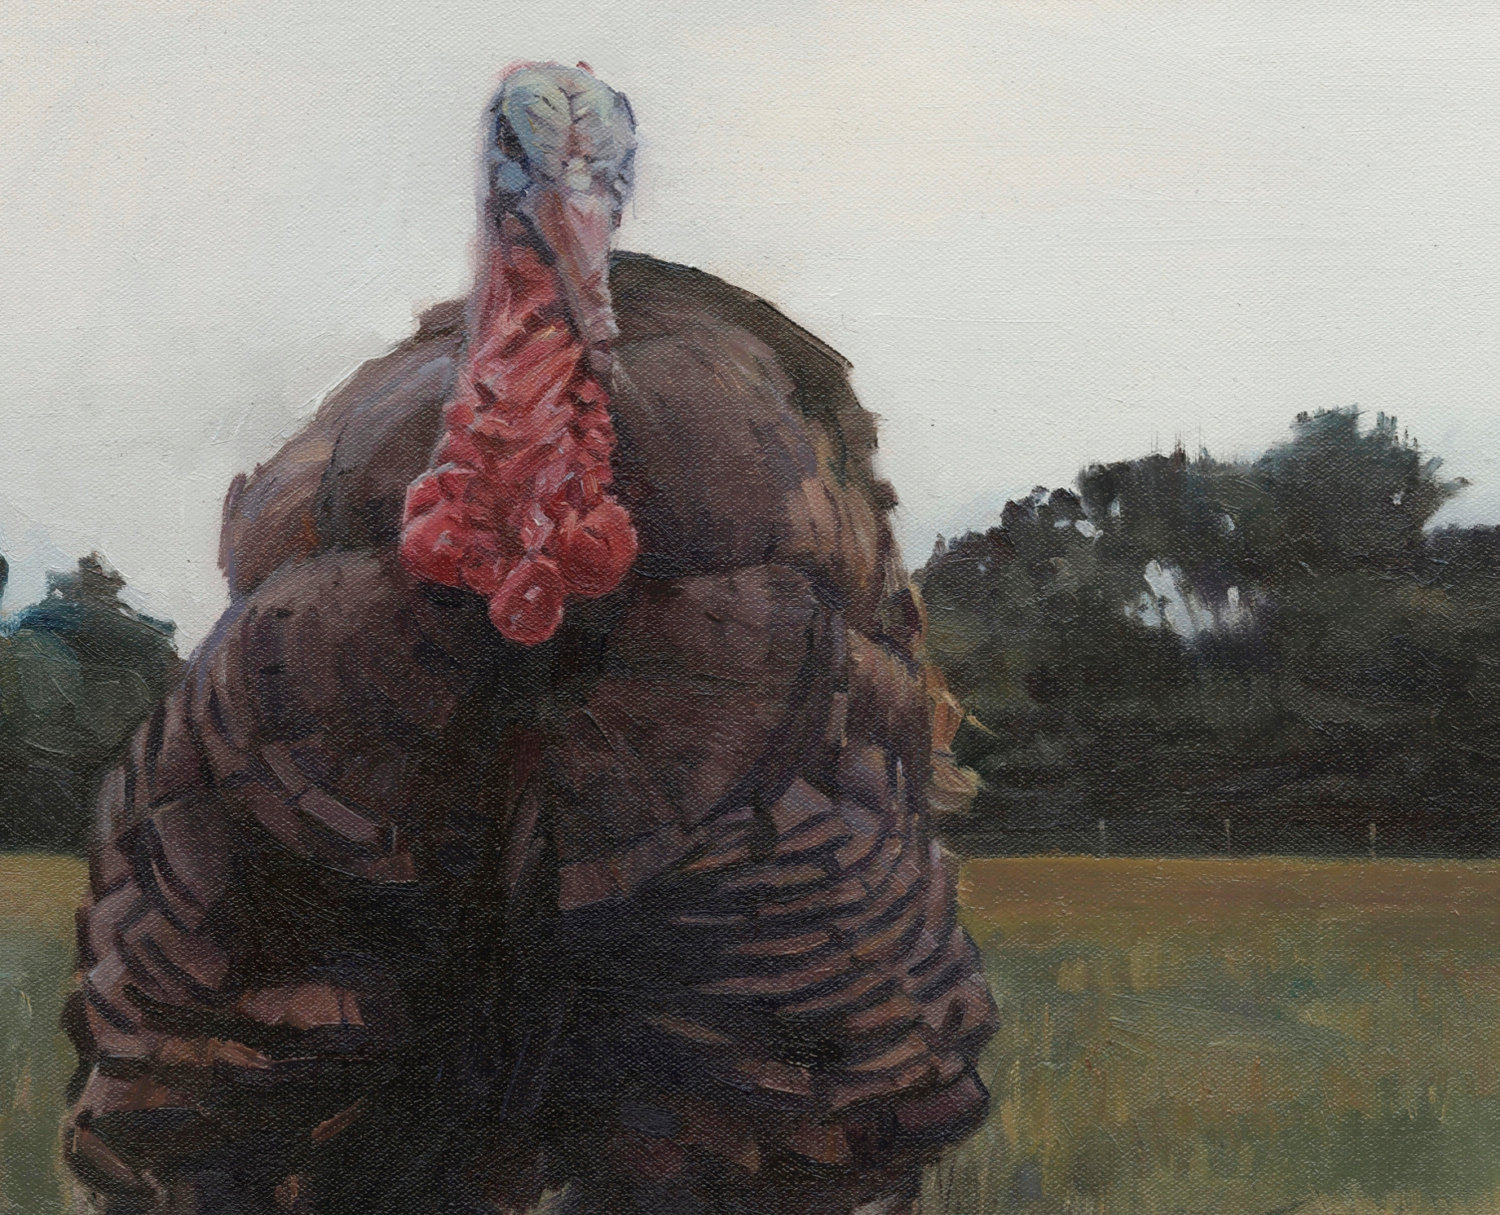 Timmy the Turkey - Marcus Pierno